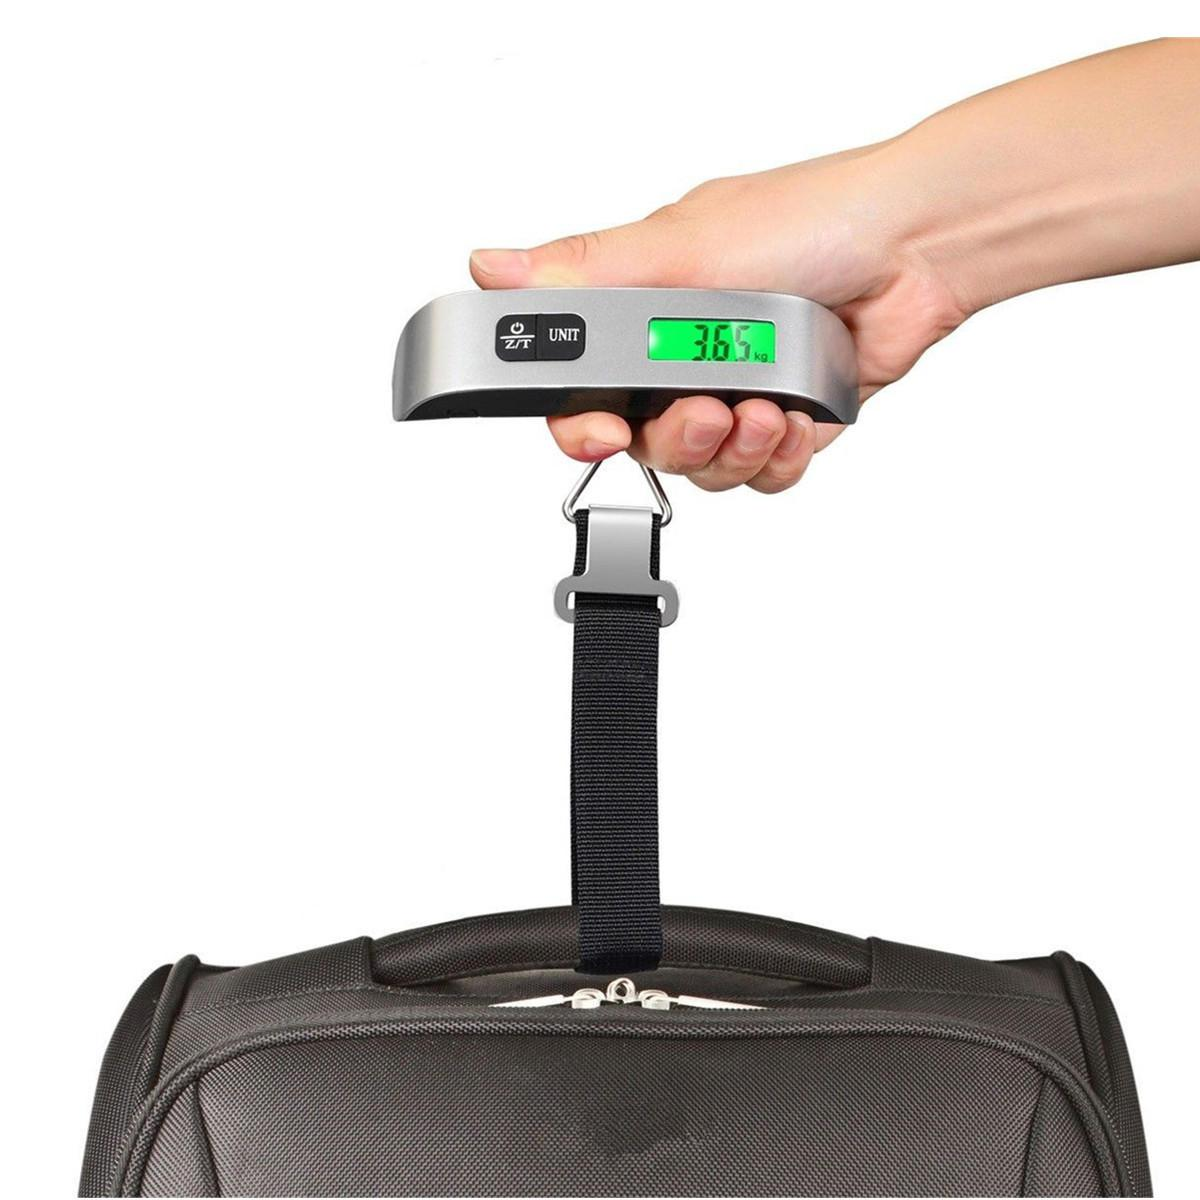 How accurate are handheld luggage scales?